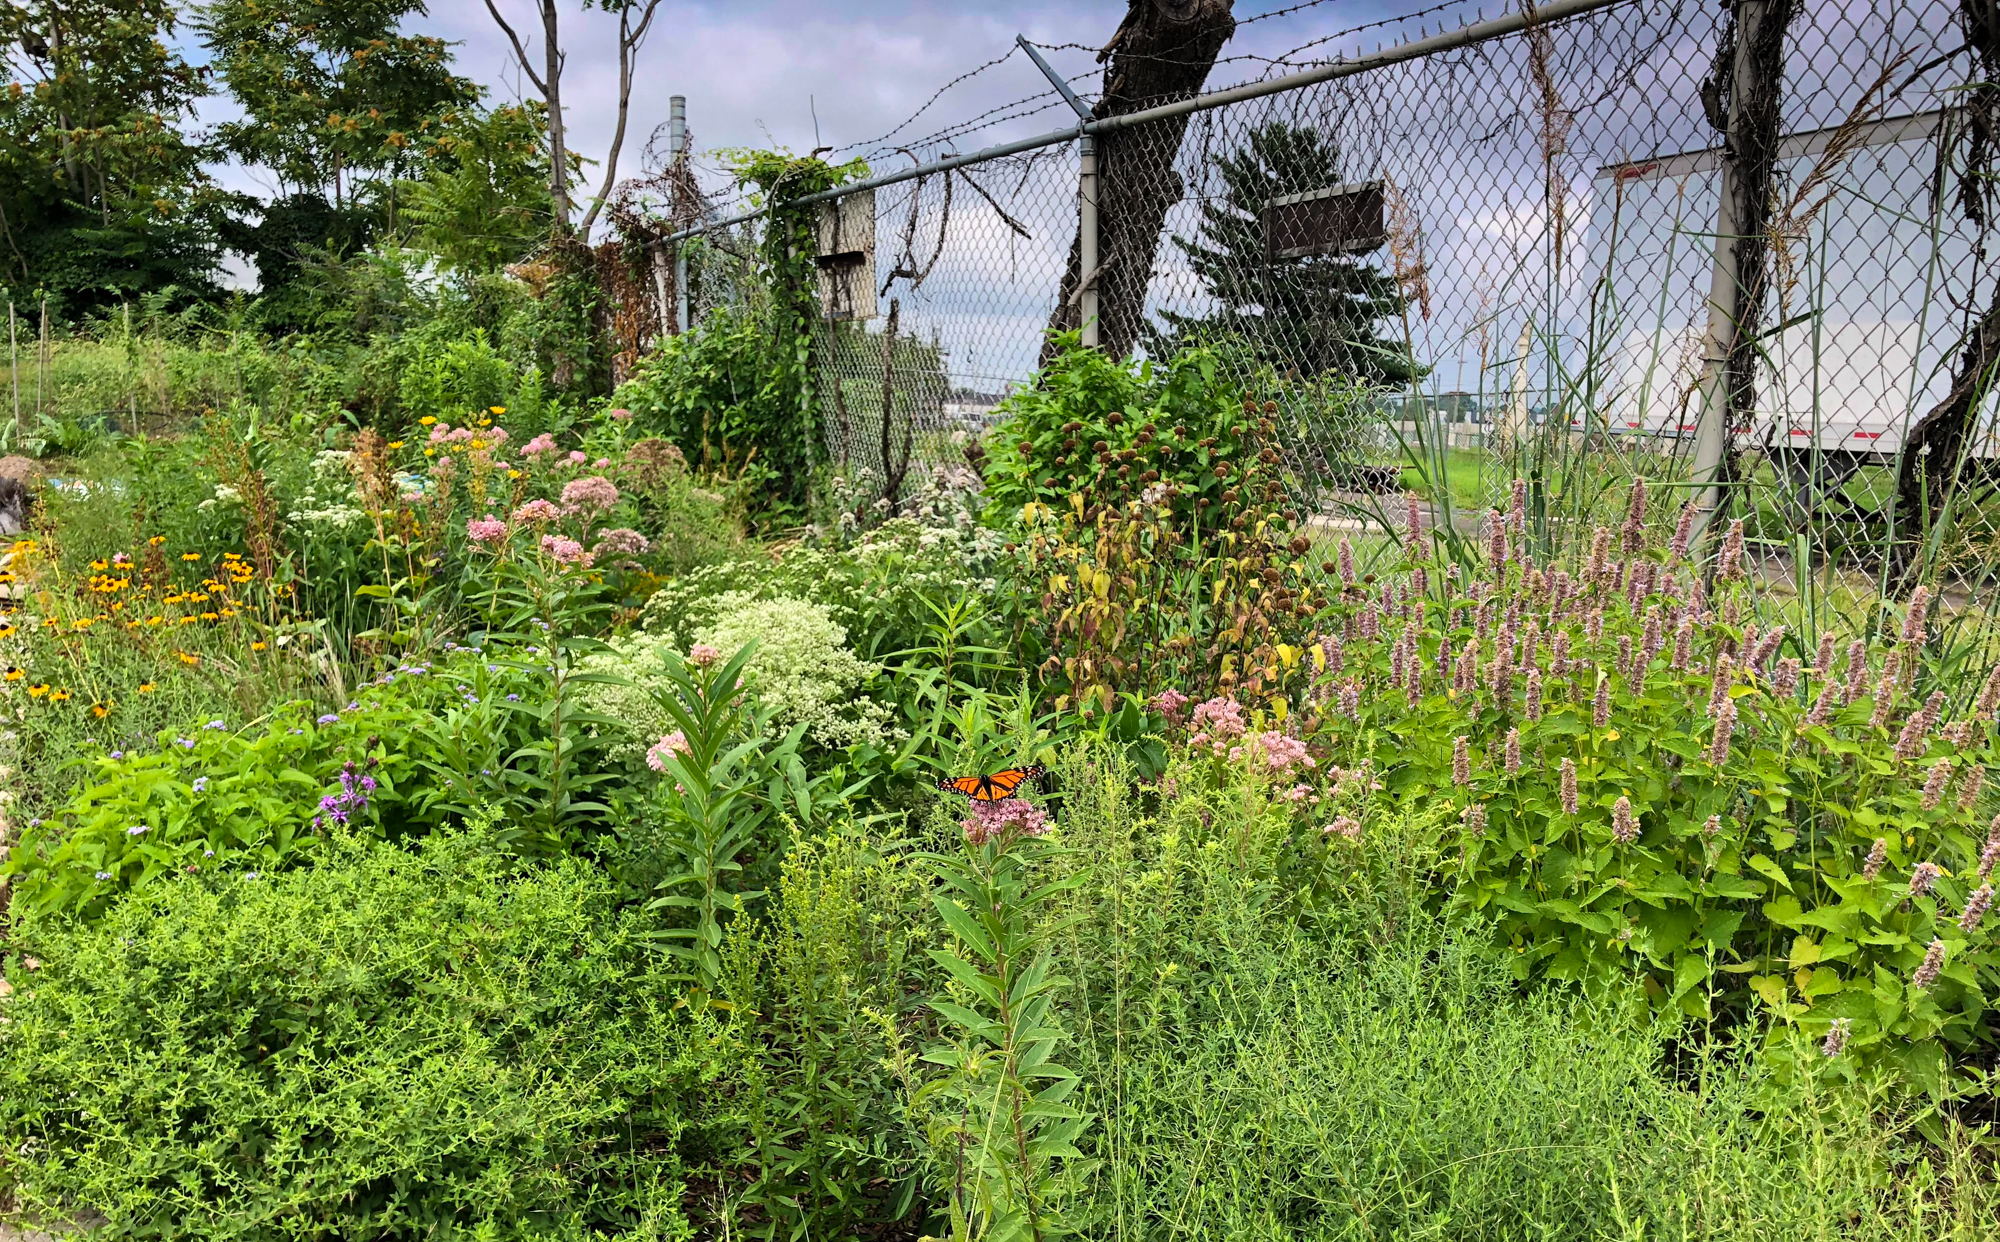 Demo garden/wildlife habitat at Good Host Plants in Philadelphia, PA (Photo: John Janick)